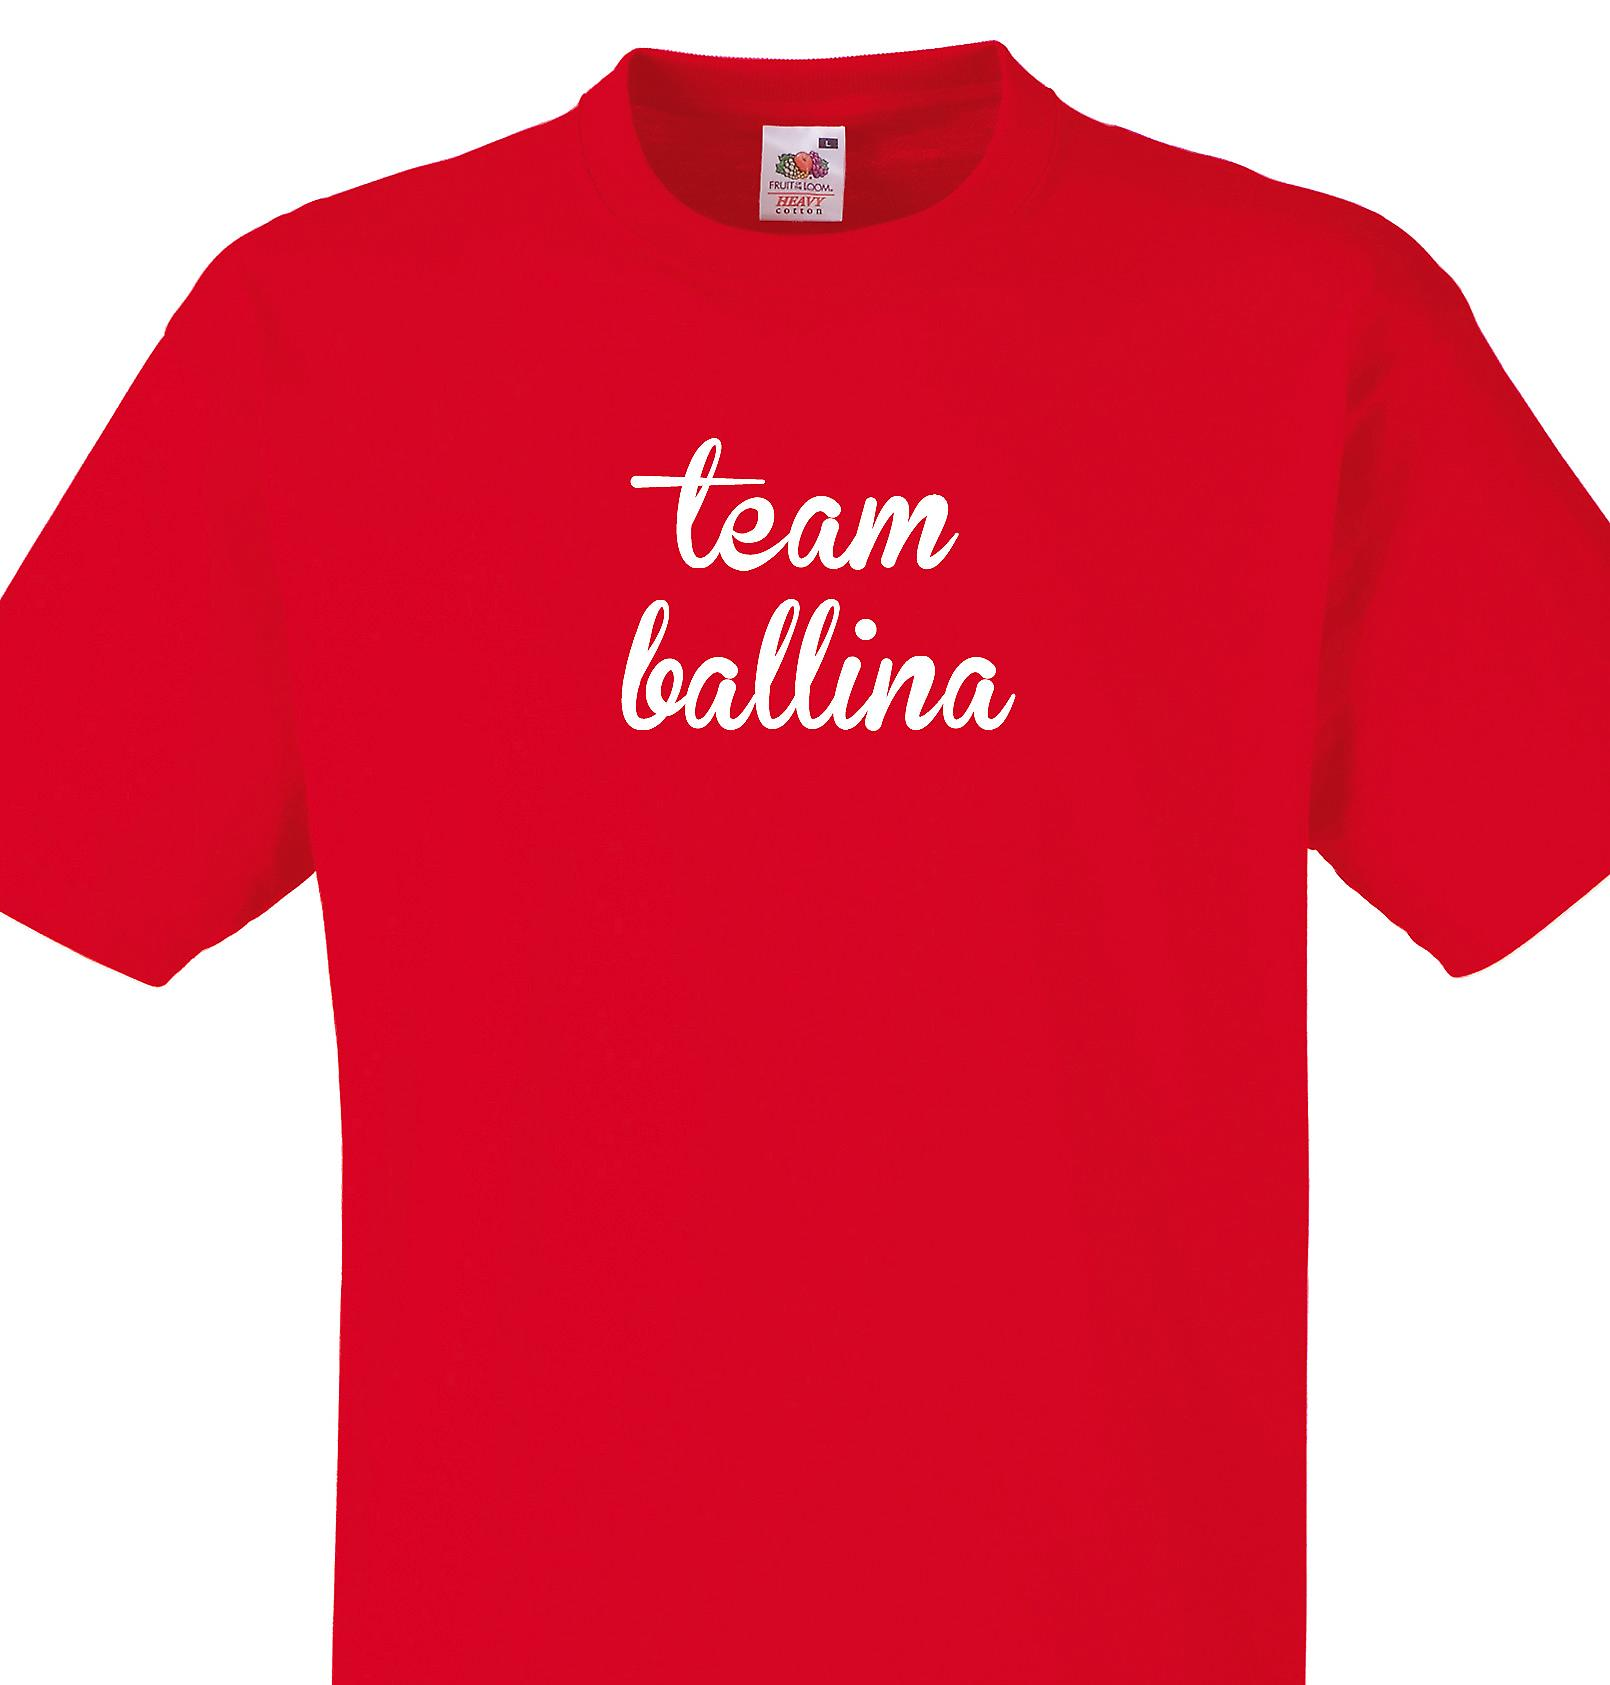 Team Ballina Red T shirt